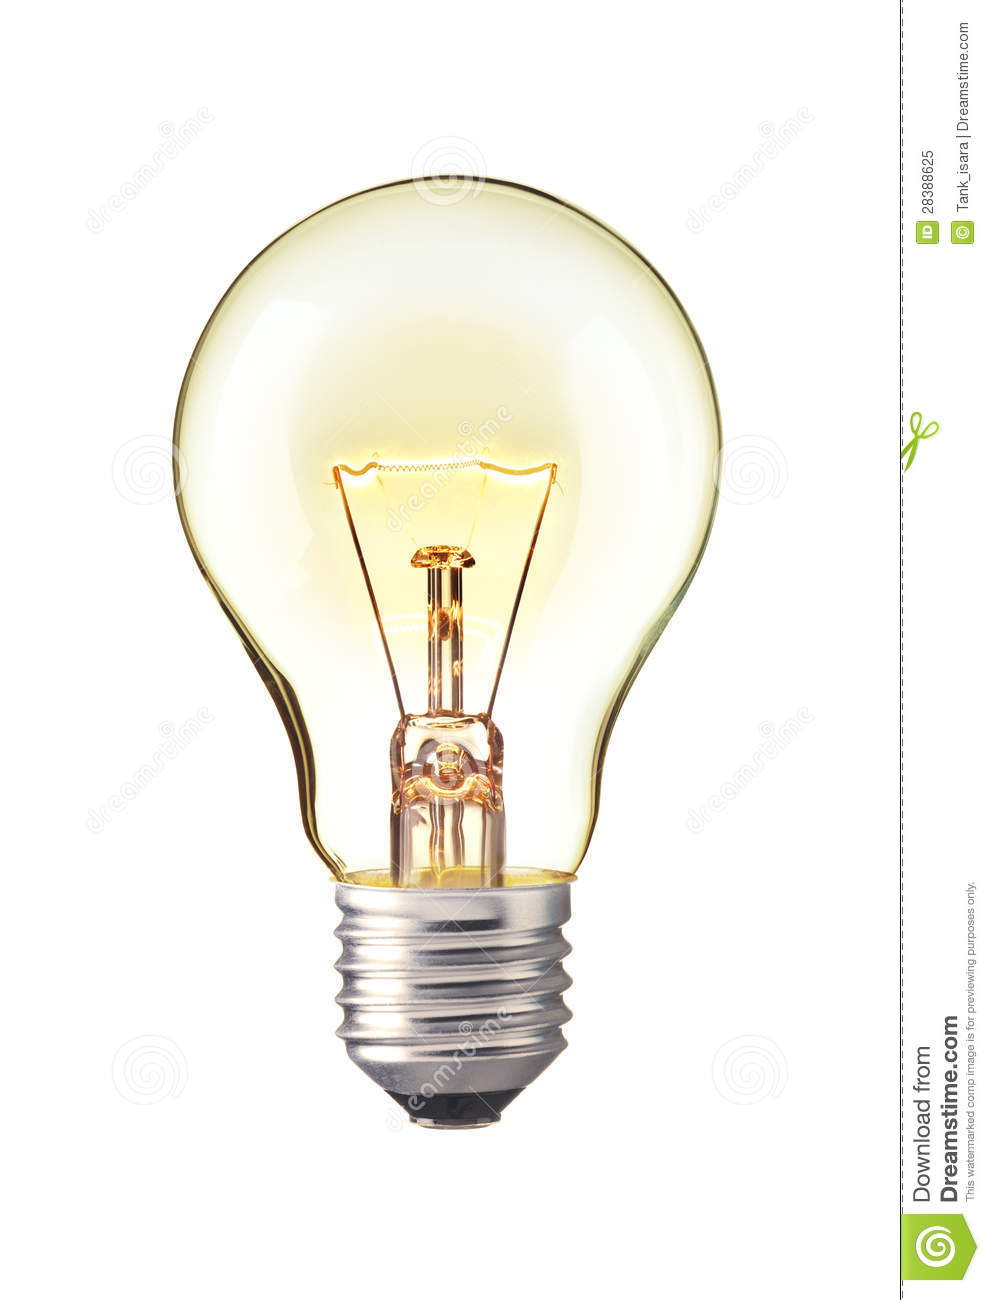 Trun On Tungsten Light Bulb Realistic Photo Image Royalty Free Stock Photo Image 28388625